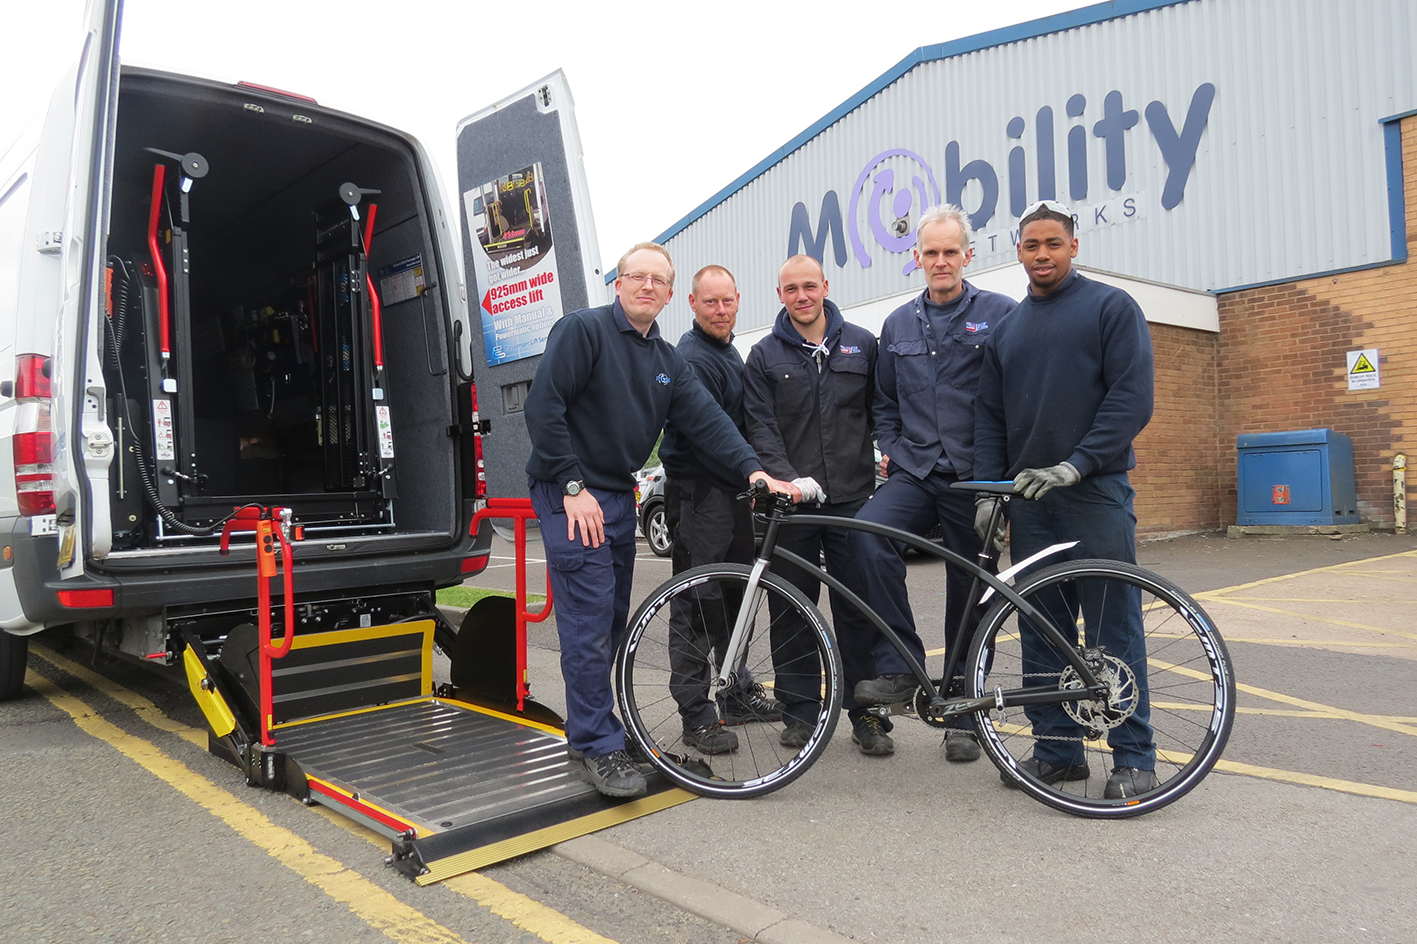 PLS wins bespoke bicycle manufacturing competition